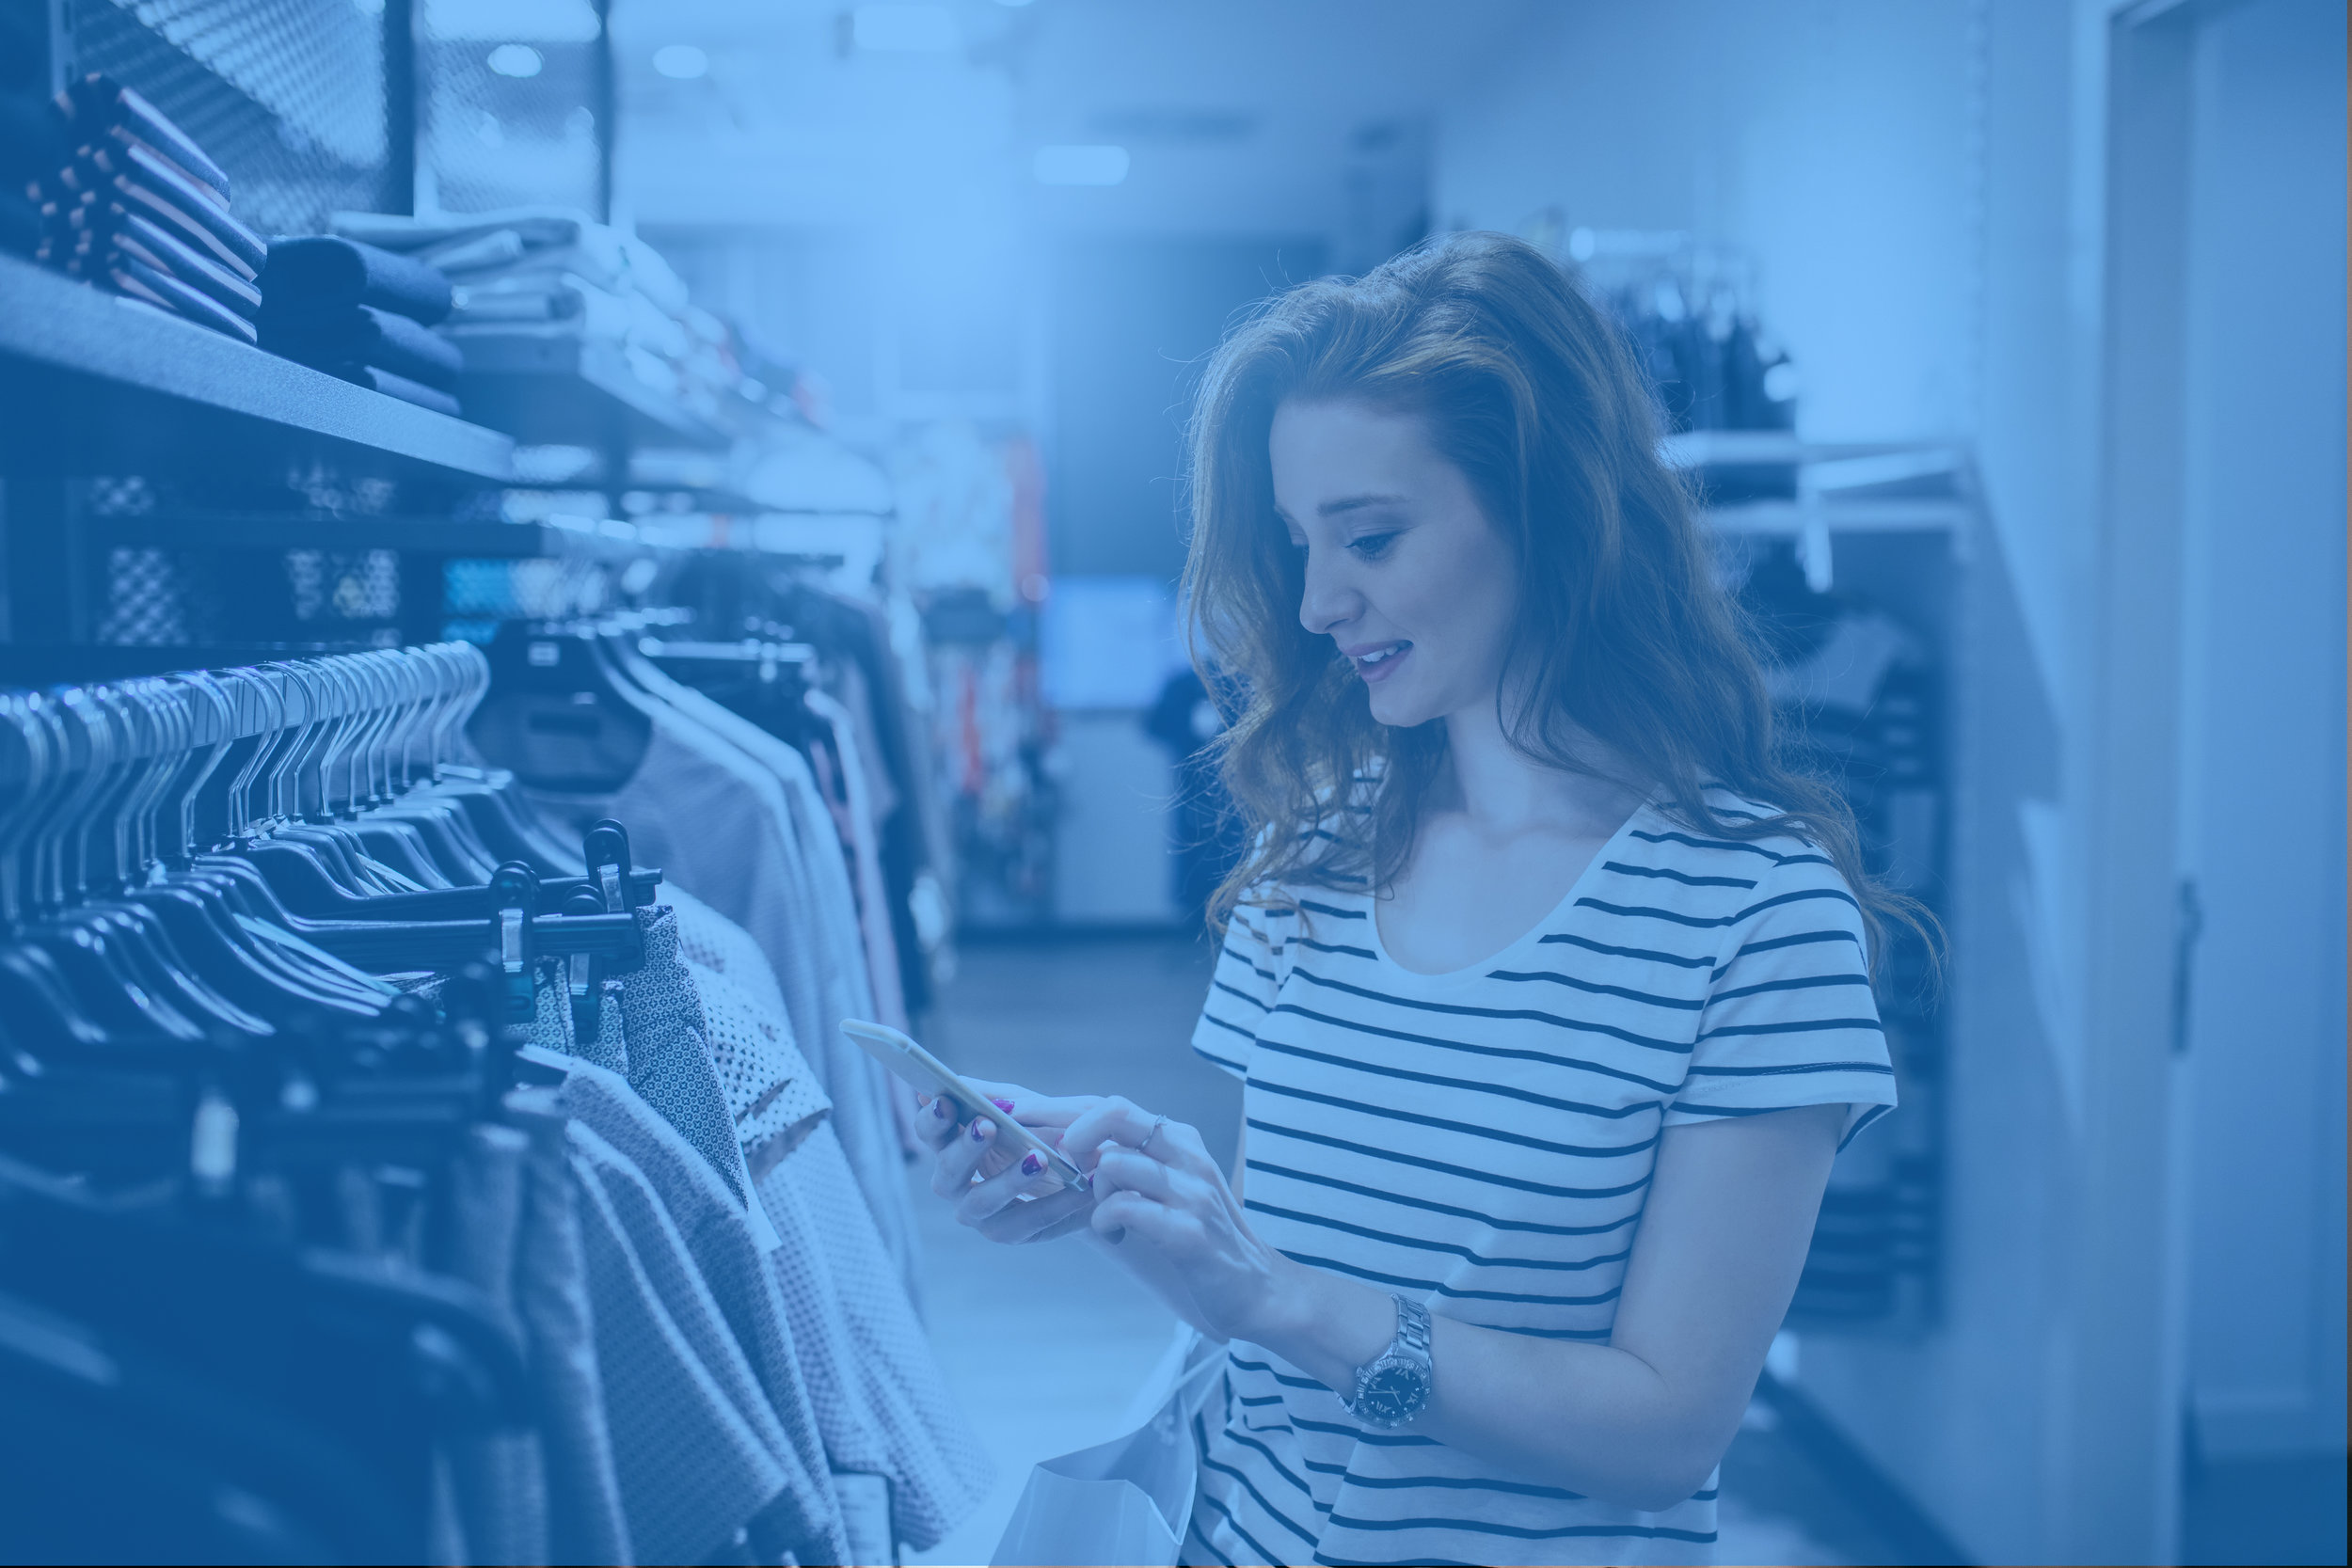 RETAIL - Optimize supply chain and logisticsReduce shrink and closely monitor inventoryPredict customer lifetime value and churnDynamically price productsImprove Inventory Management